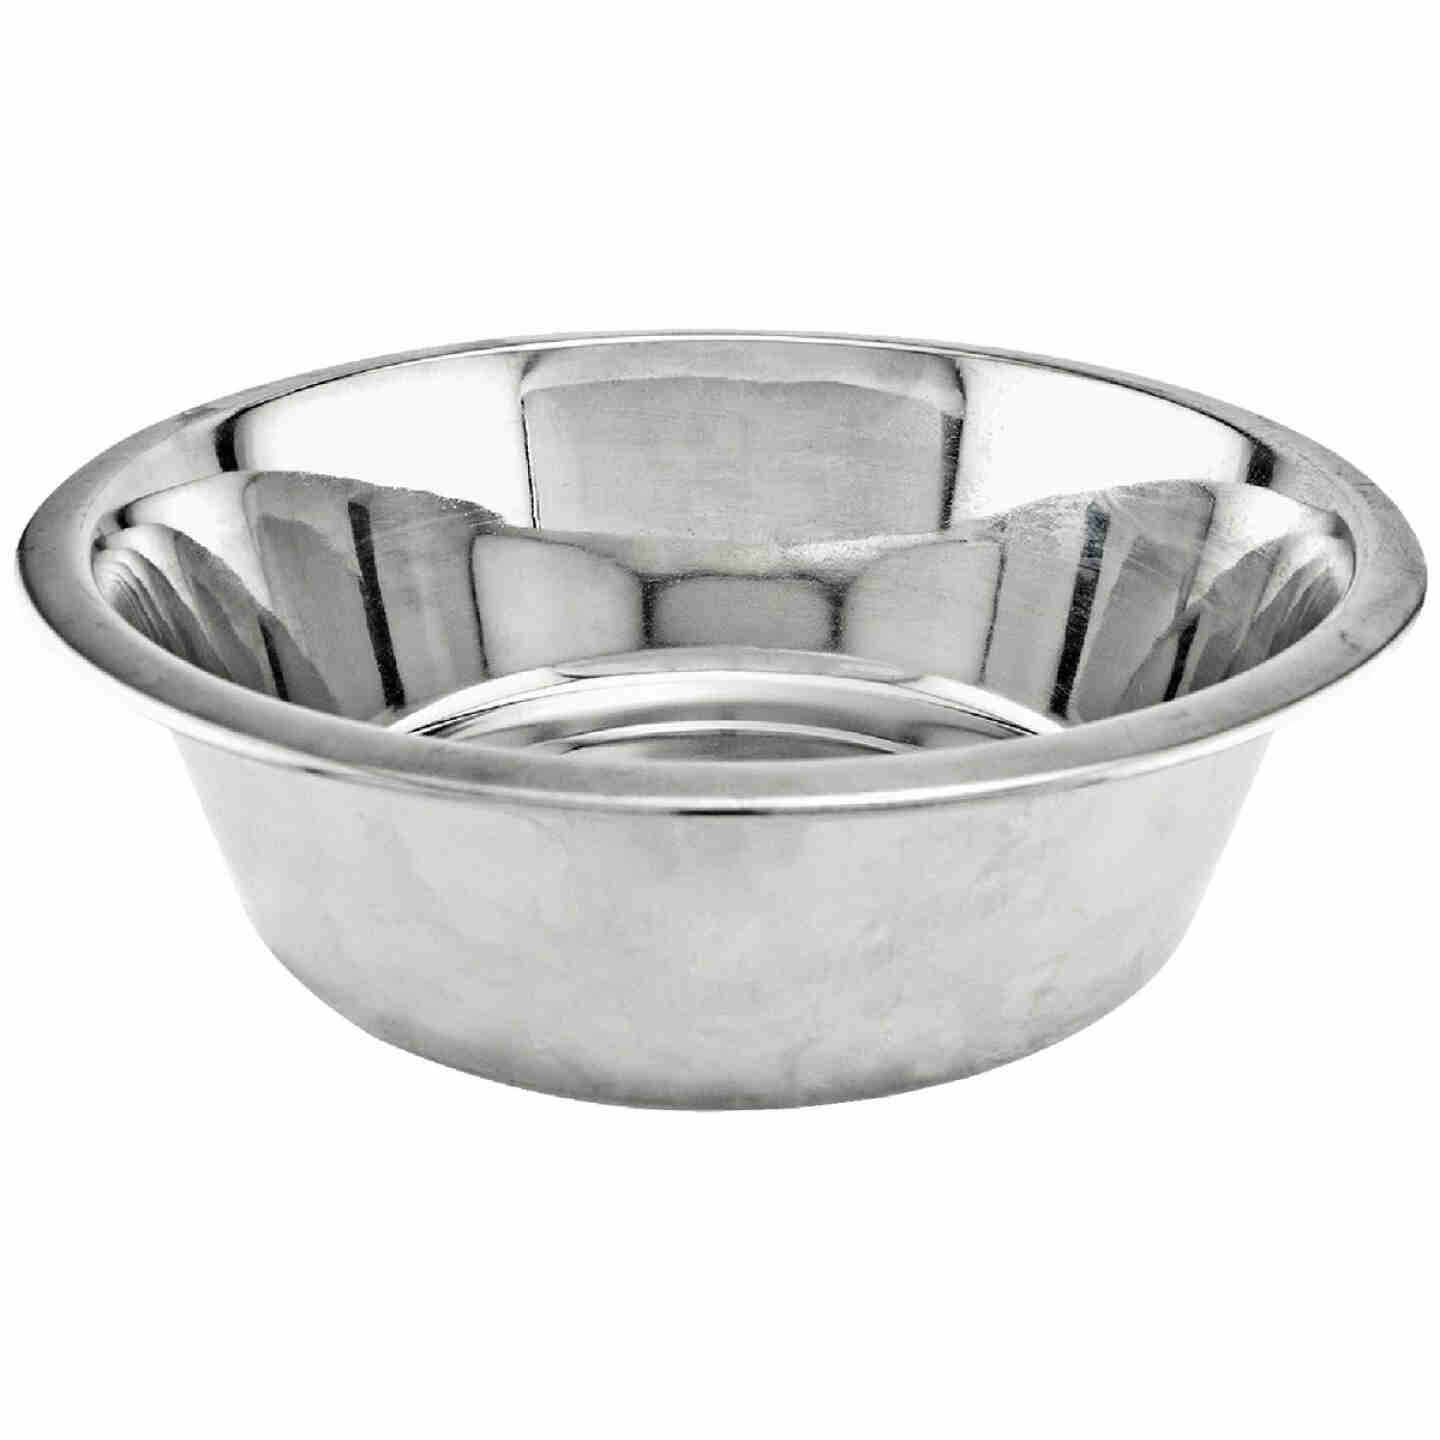 Westminster Pet Ruffin' it Stainless Steel Round 2 Qt. Pet Food Bowl Image 1